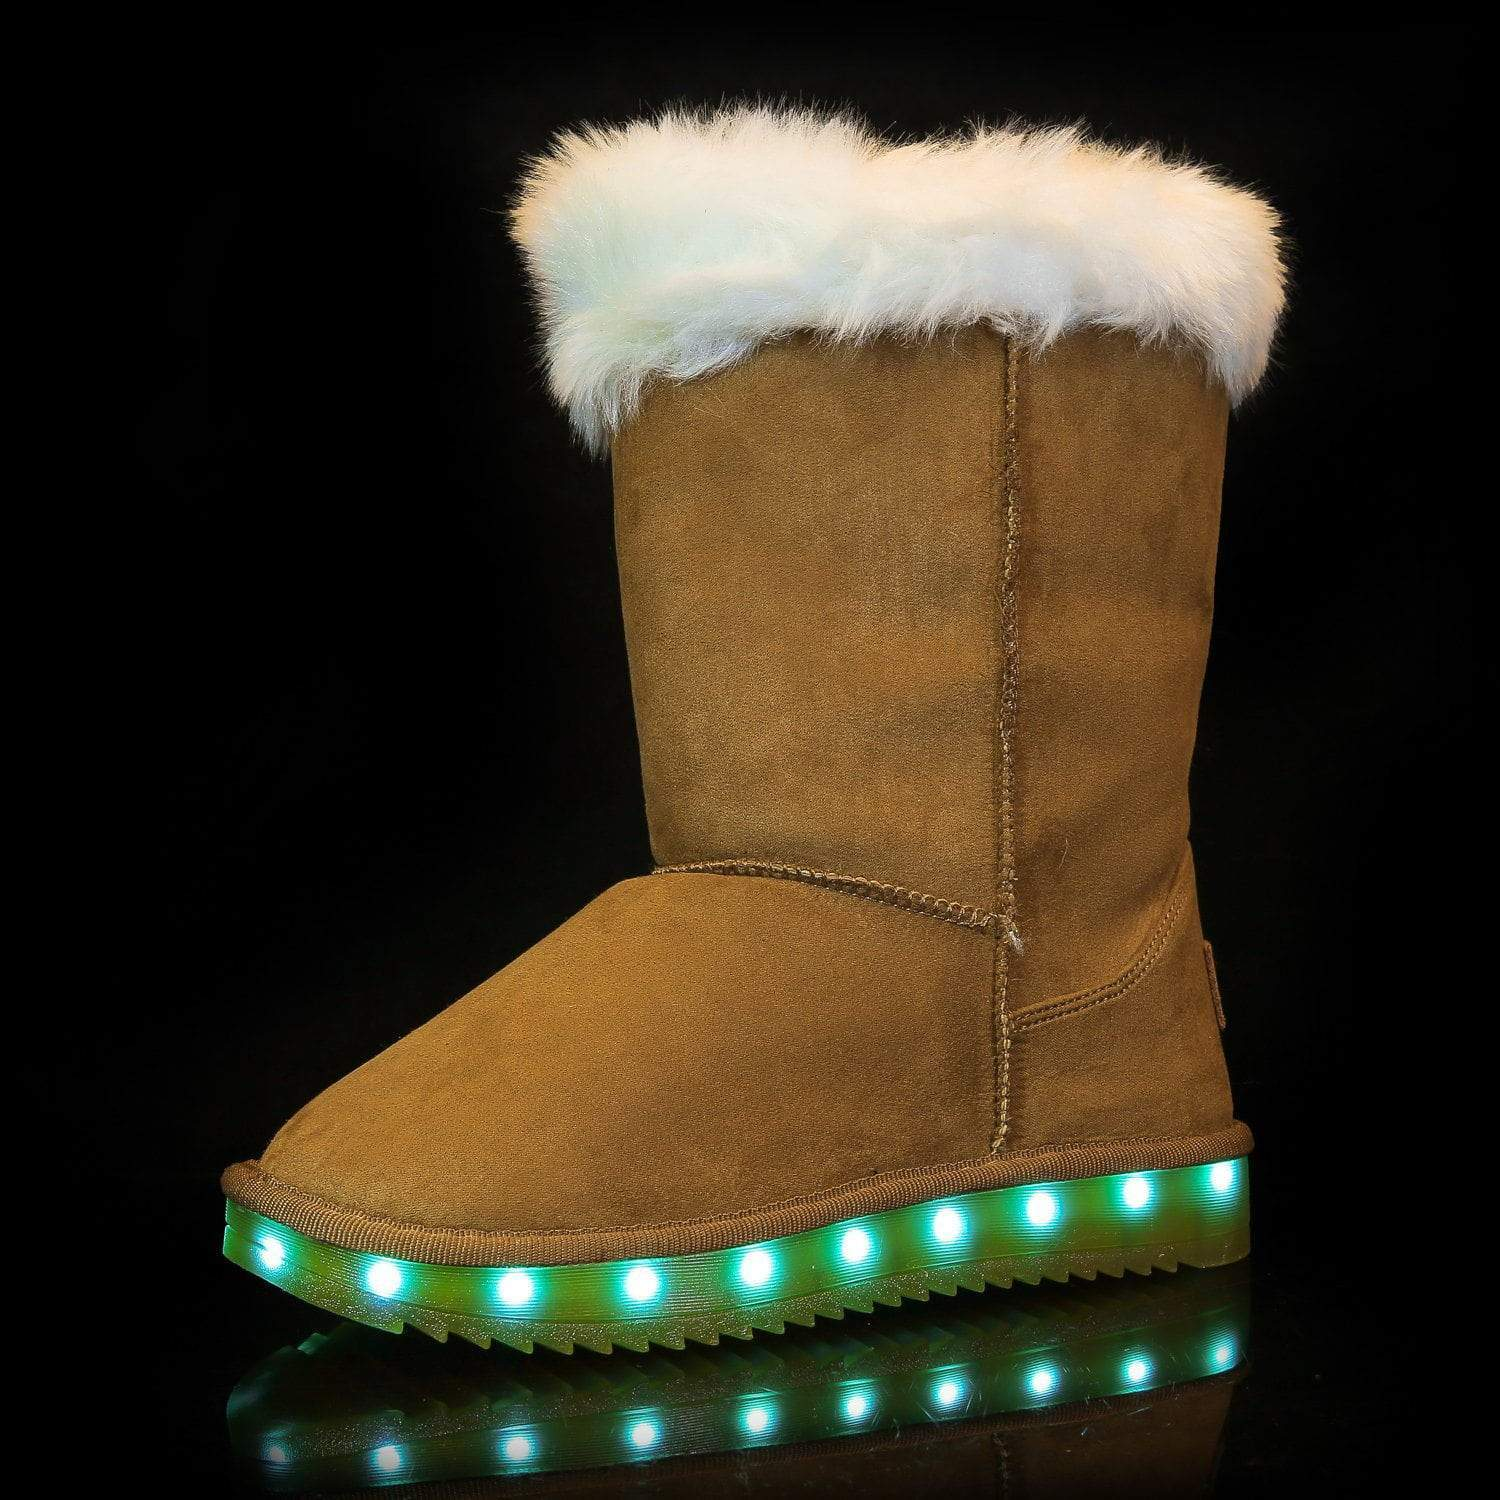 Flashez LED Footwear - Infants Flash Wear Chestnut Calf Boots